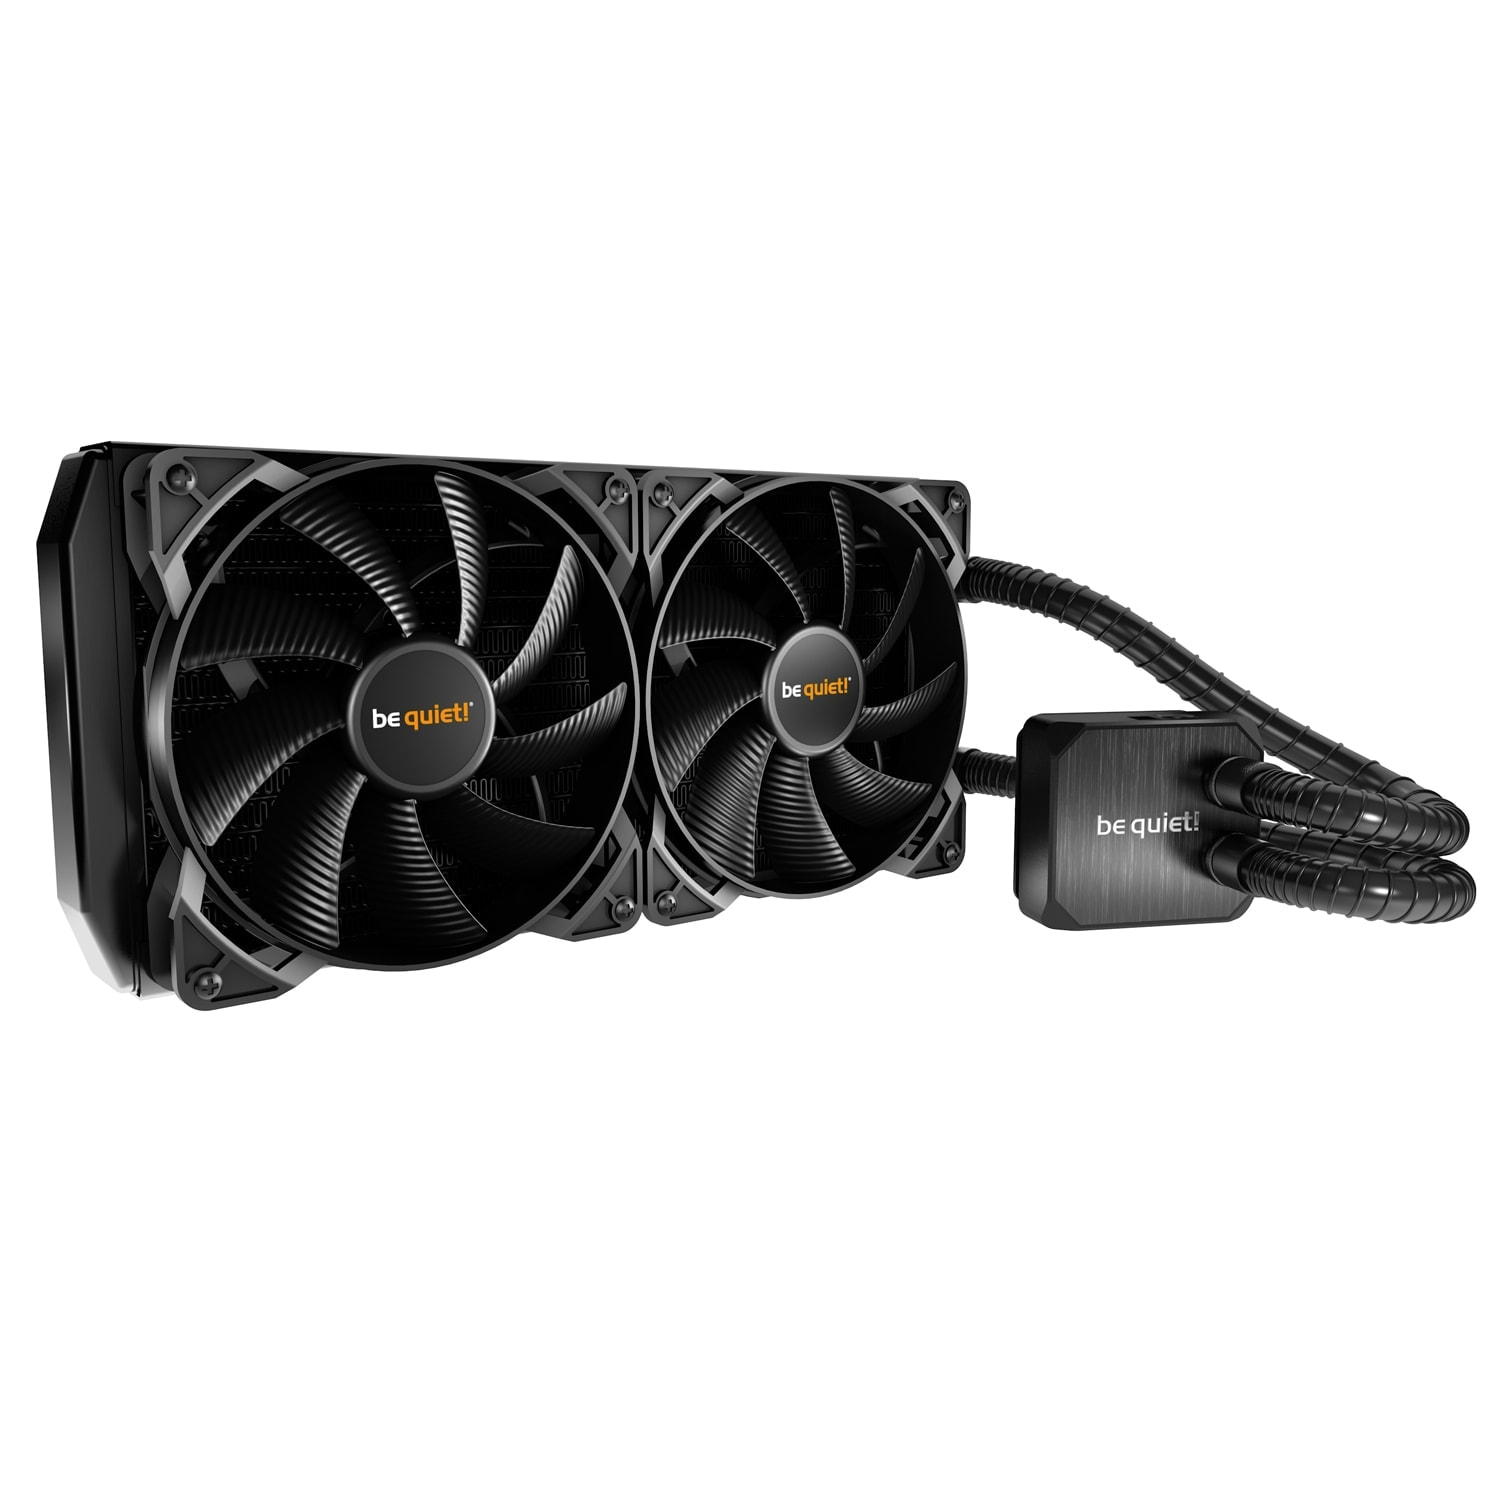 Be Quiet! SILENT LOOP 280mm - Watercooling Be Quiet! - Cybertek.fr - 0